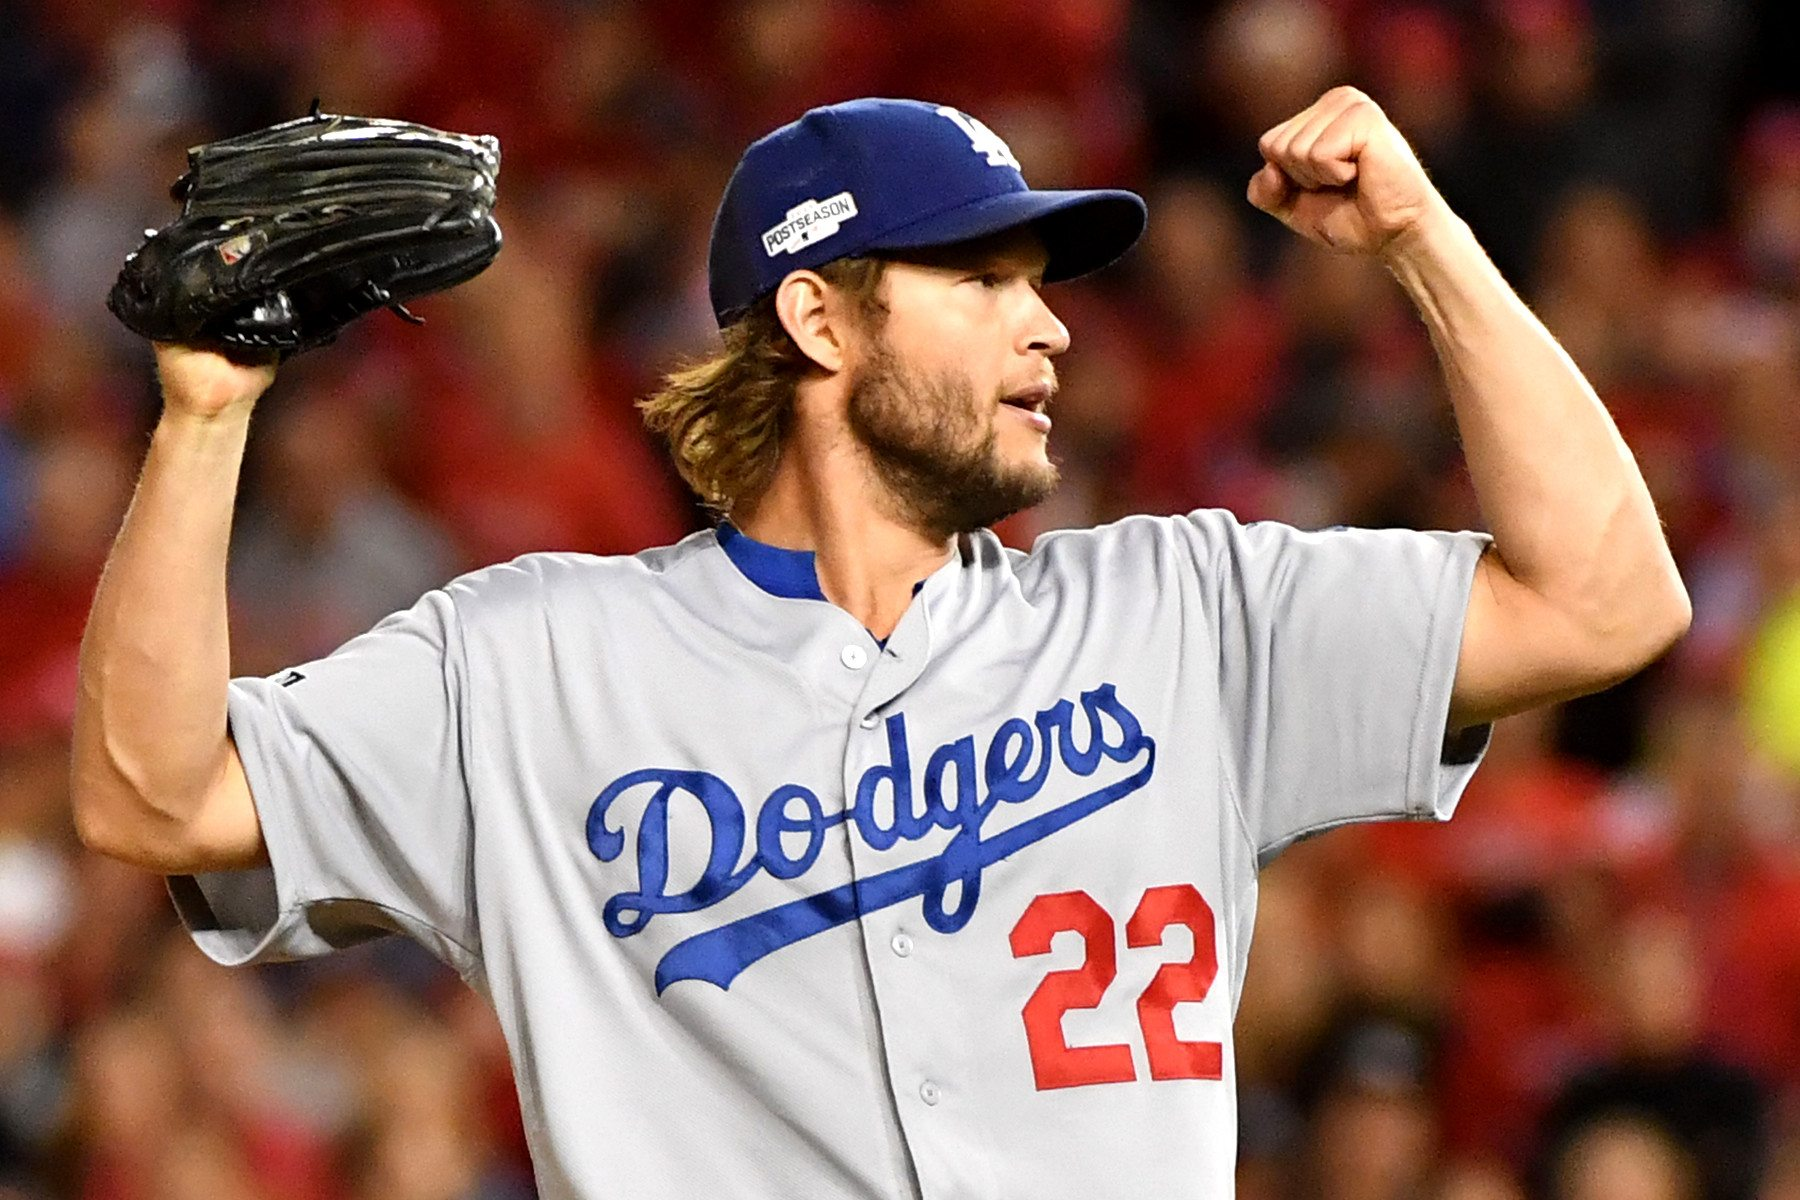 Los Angeles Dodger's ace pitcher Clayton Kershaw will have to remain hot if his team has any chance to win the World Series. (Image: UPI)